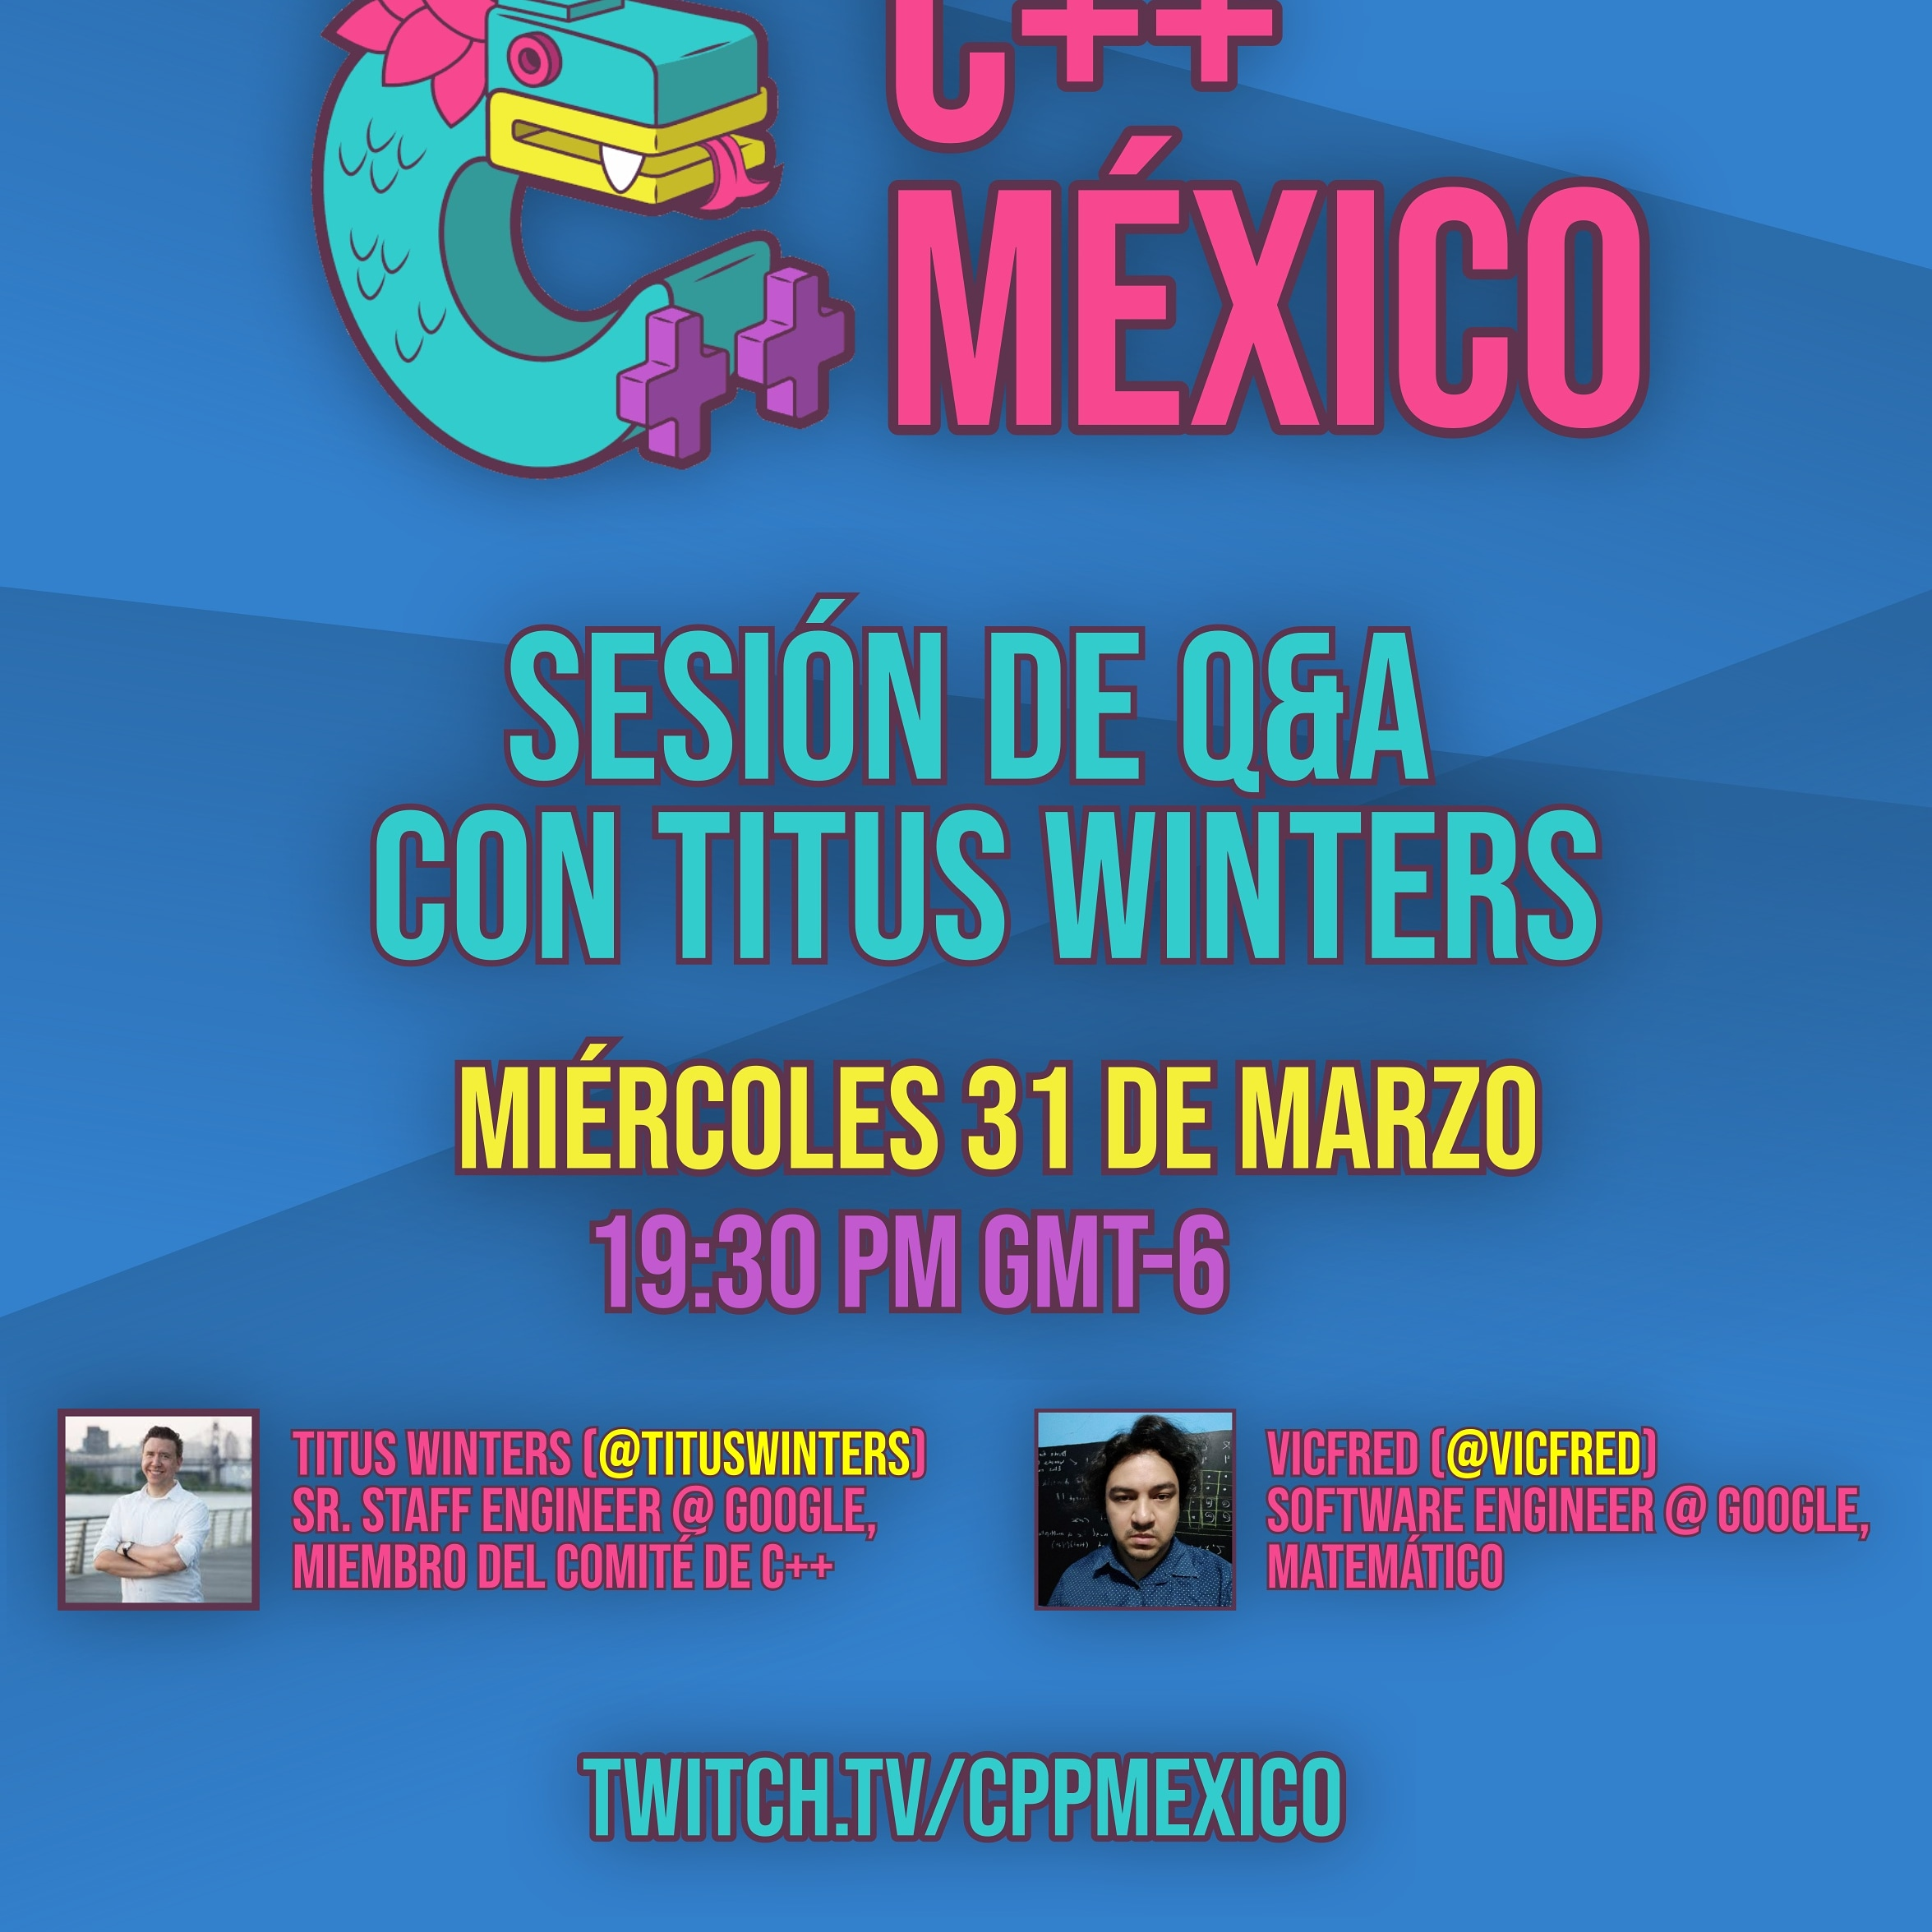 cppmexico-20211.jpg